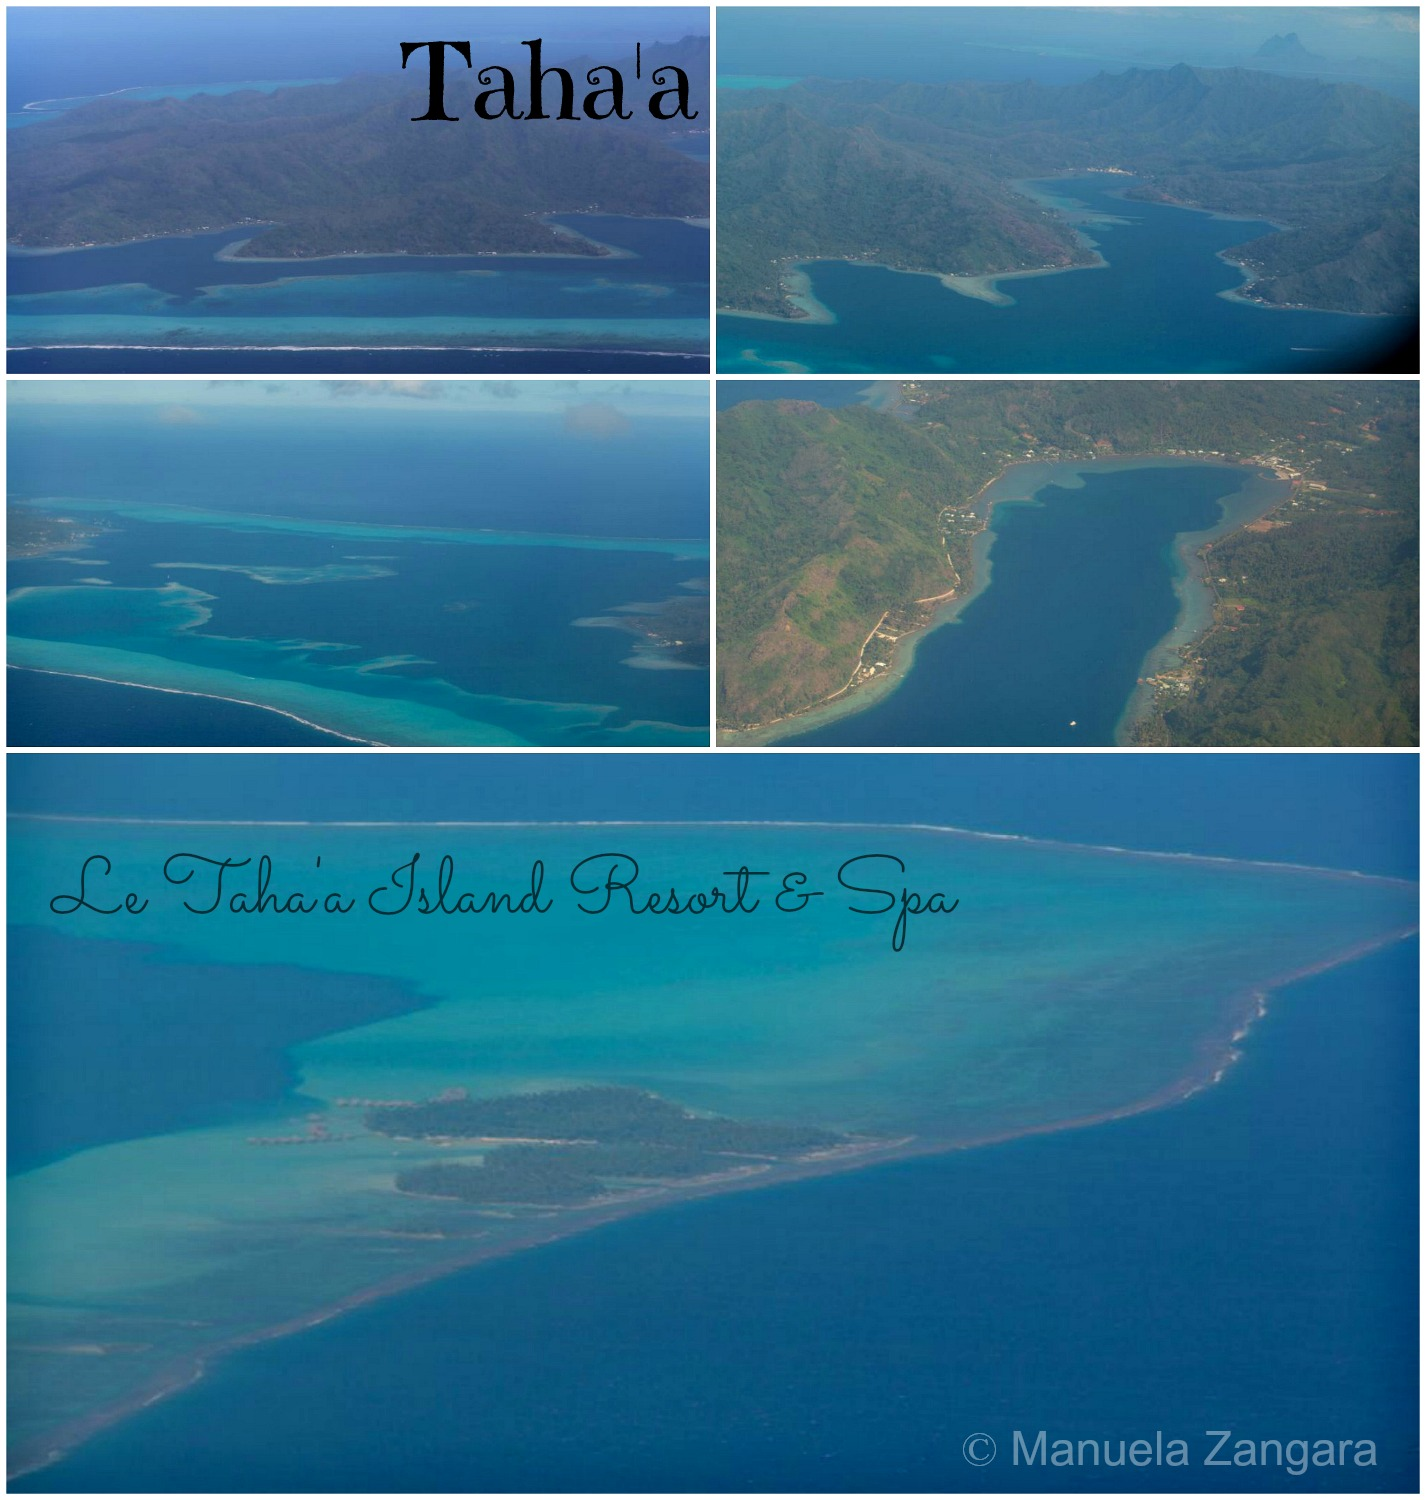 Taha'a from plane